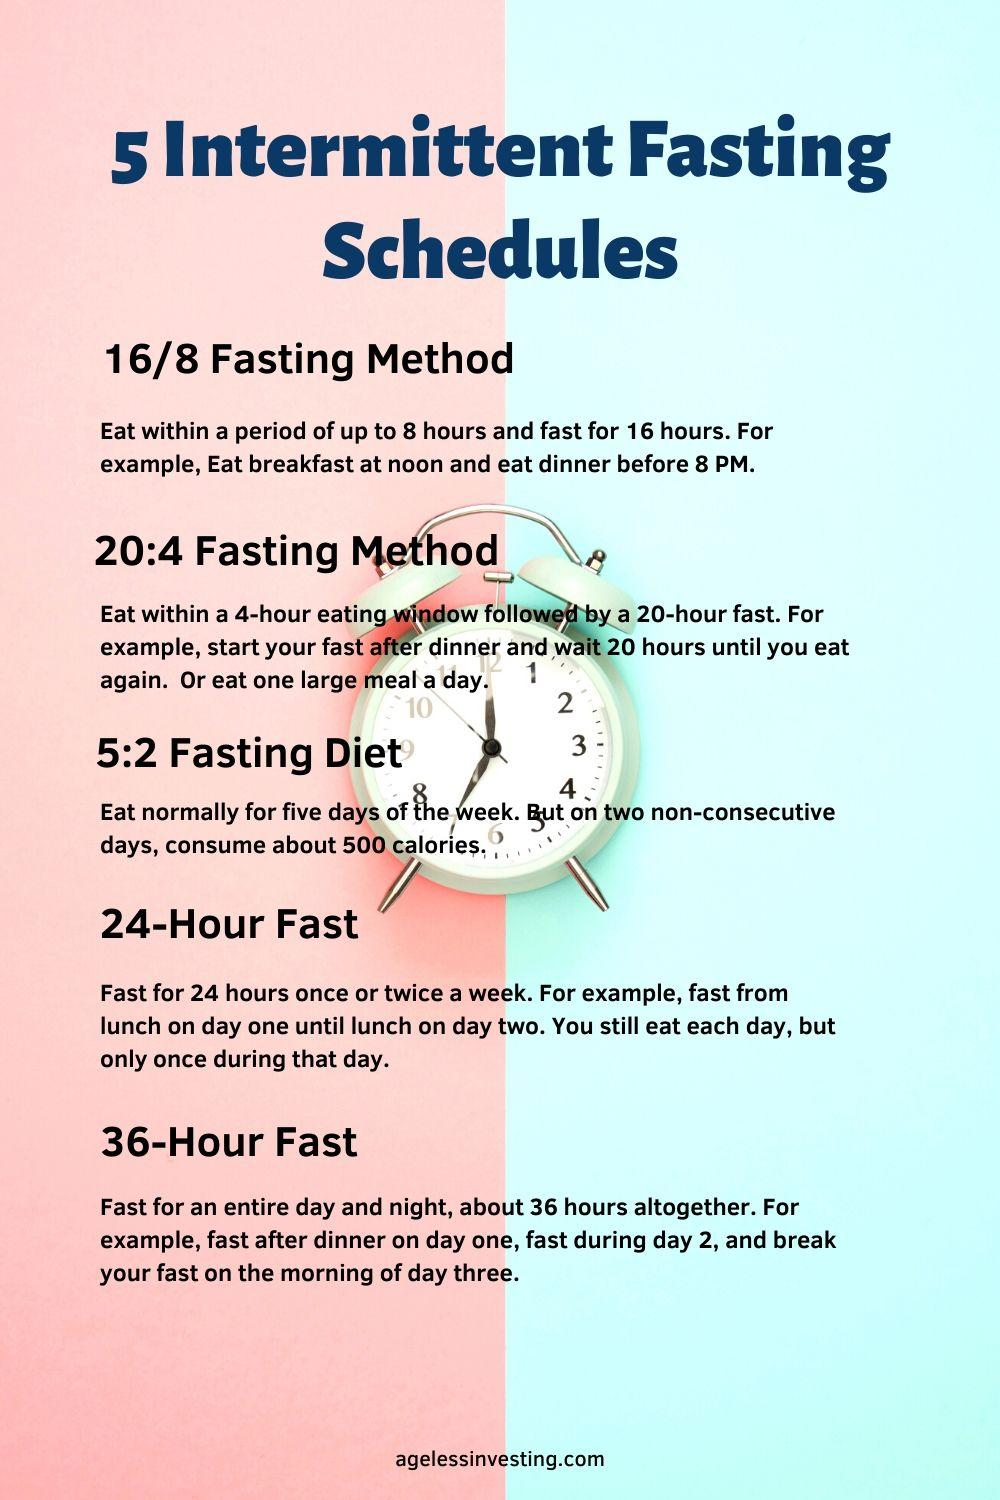 Intermittent Fasting Times And Benefits For Weight Loss Ageless Investing